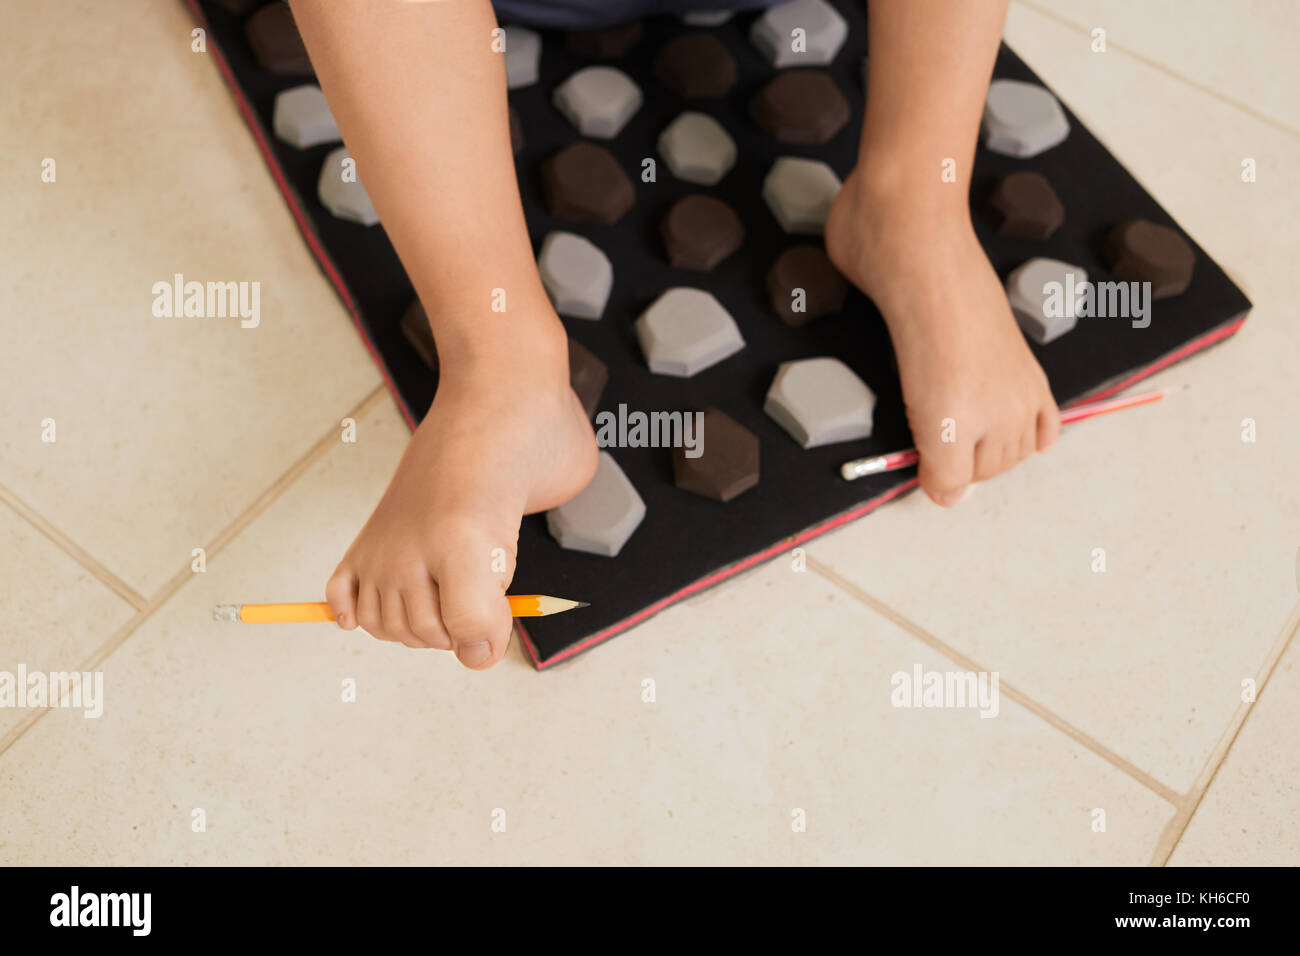 Little boy on massage mat doing exercises for flatfoot prevention.Child flatfoot treatment using special massage - Stock Image